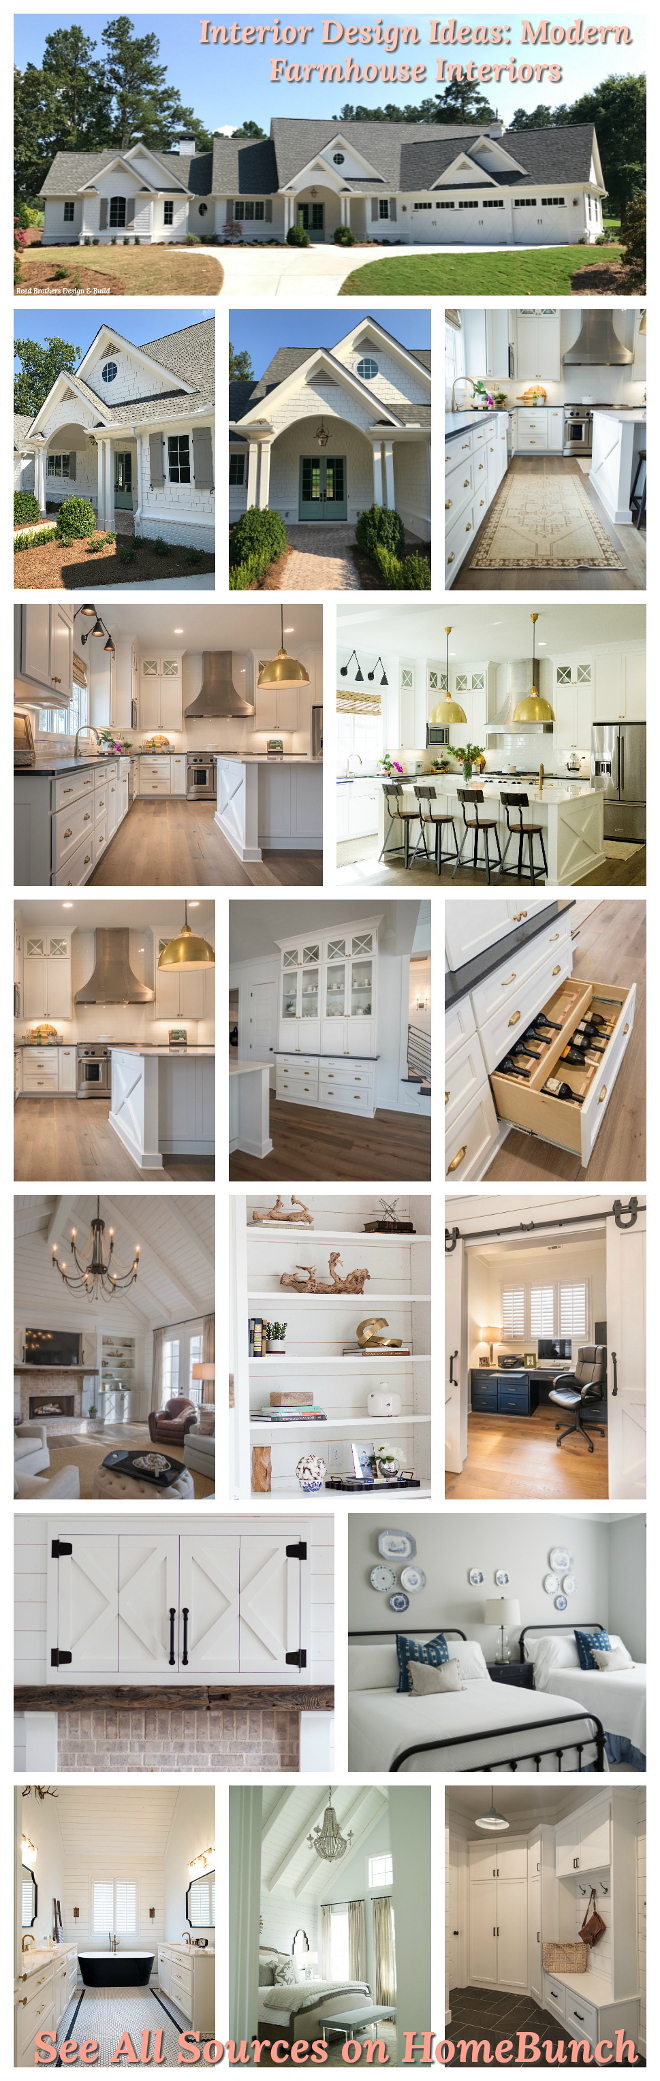 Interior Design Ideas Modern Farmhouse Interiors See Paint Colors and All Decor sources on Home Bunch blog